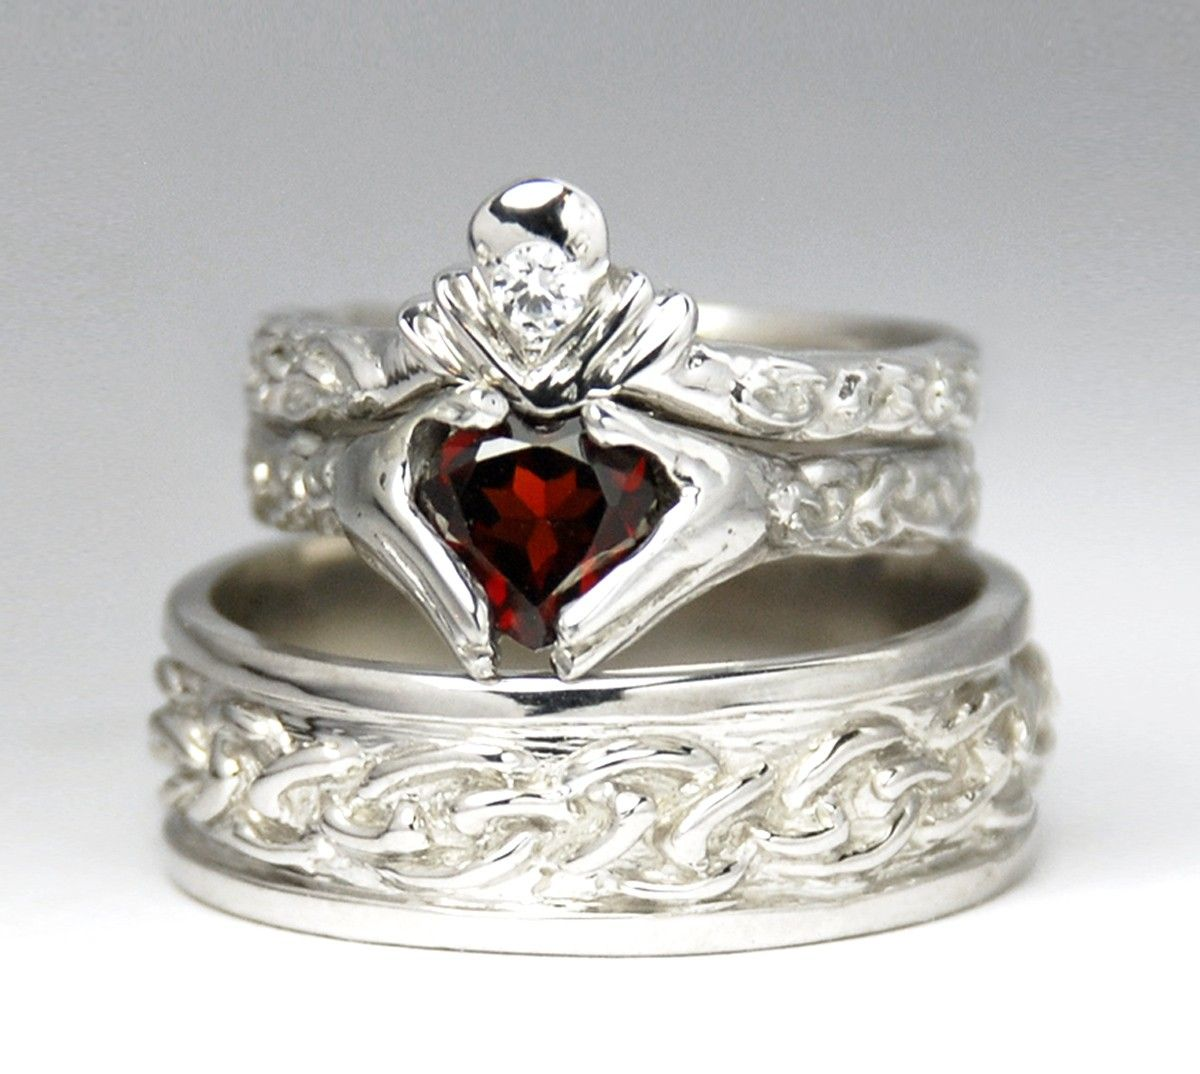 claddagh wedding set - sterling silver - new - diamond - garnet